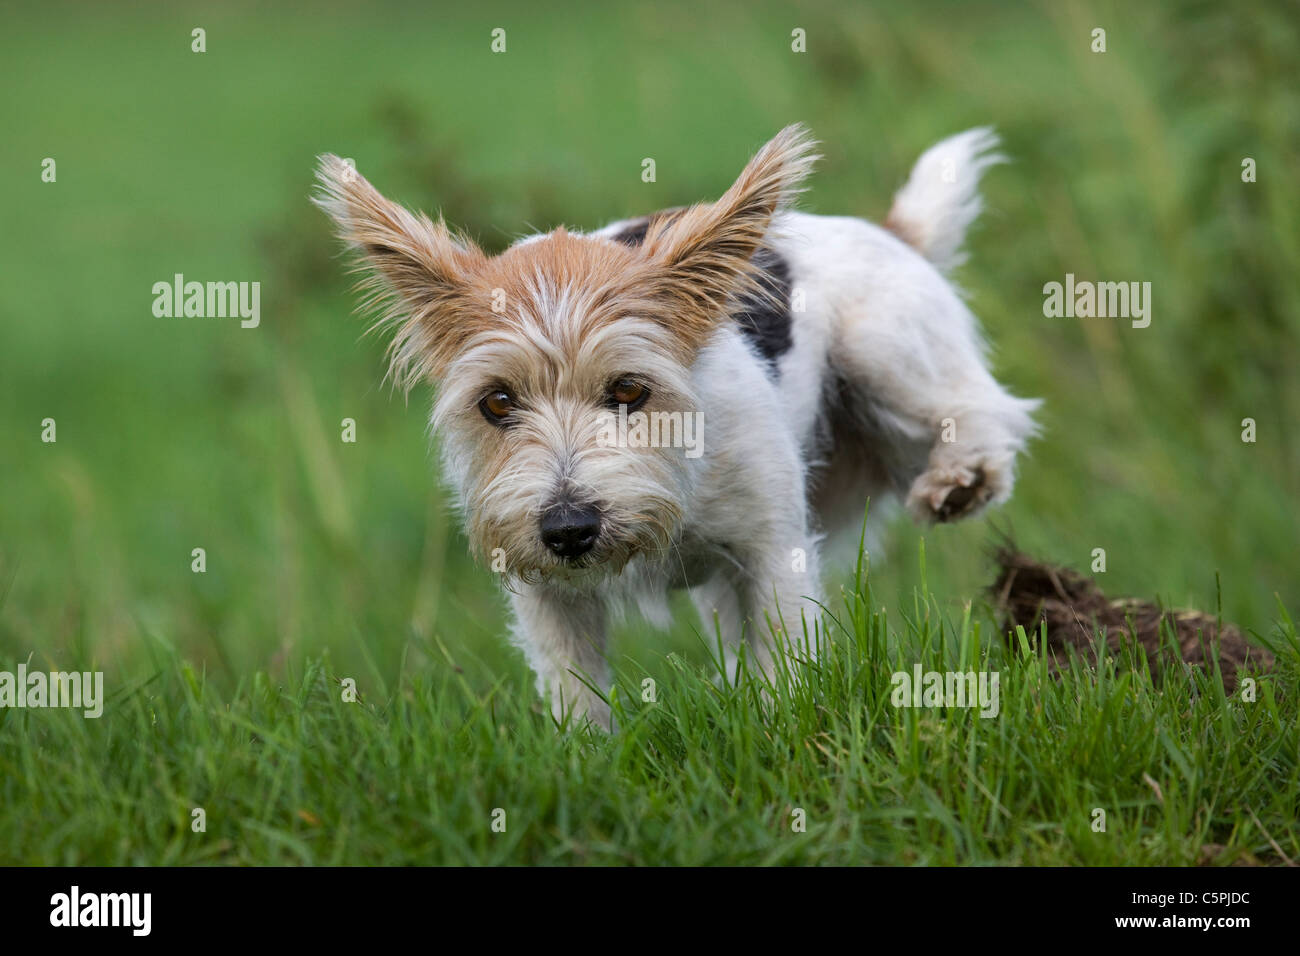 Rough-coated Jack Russell terrier (Canis lupus familiaris) running in field - Stock Image